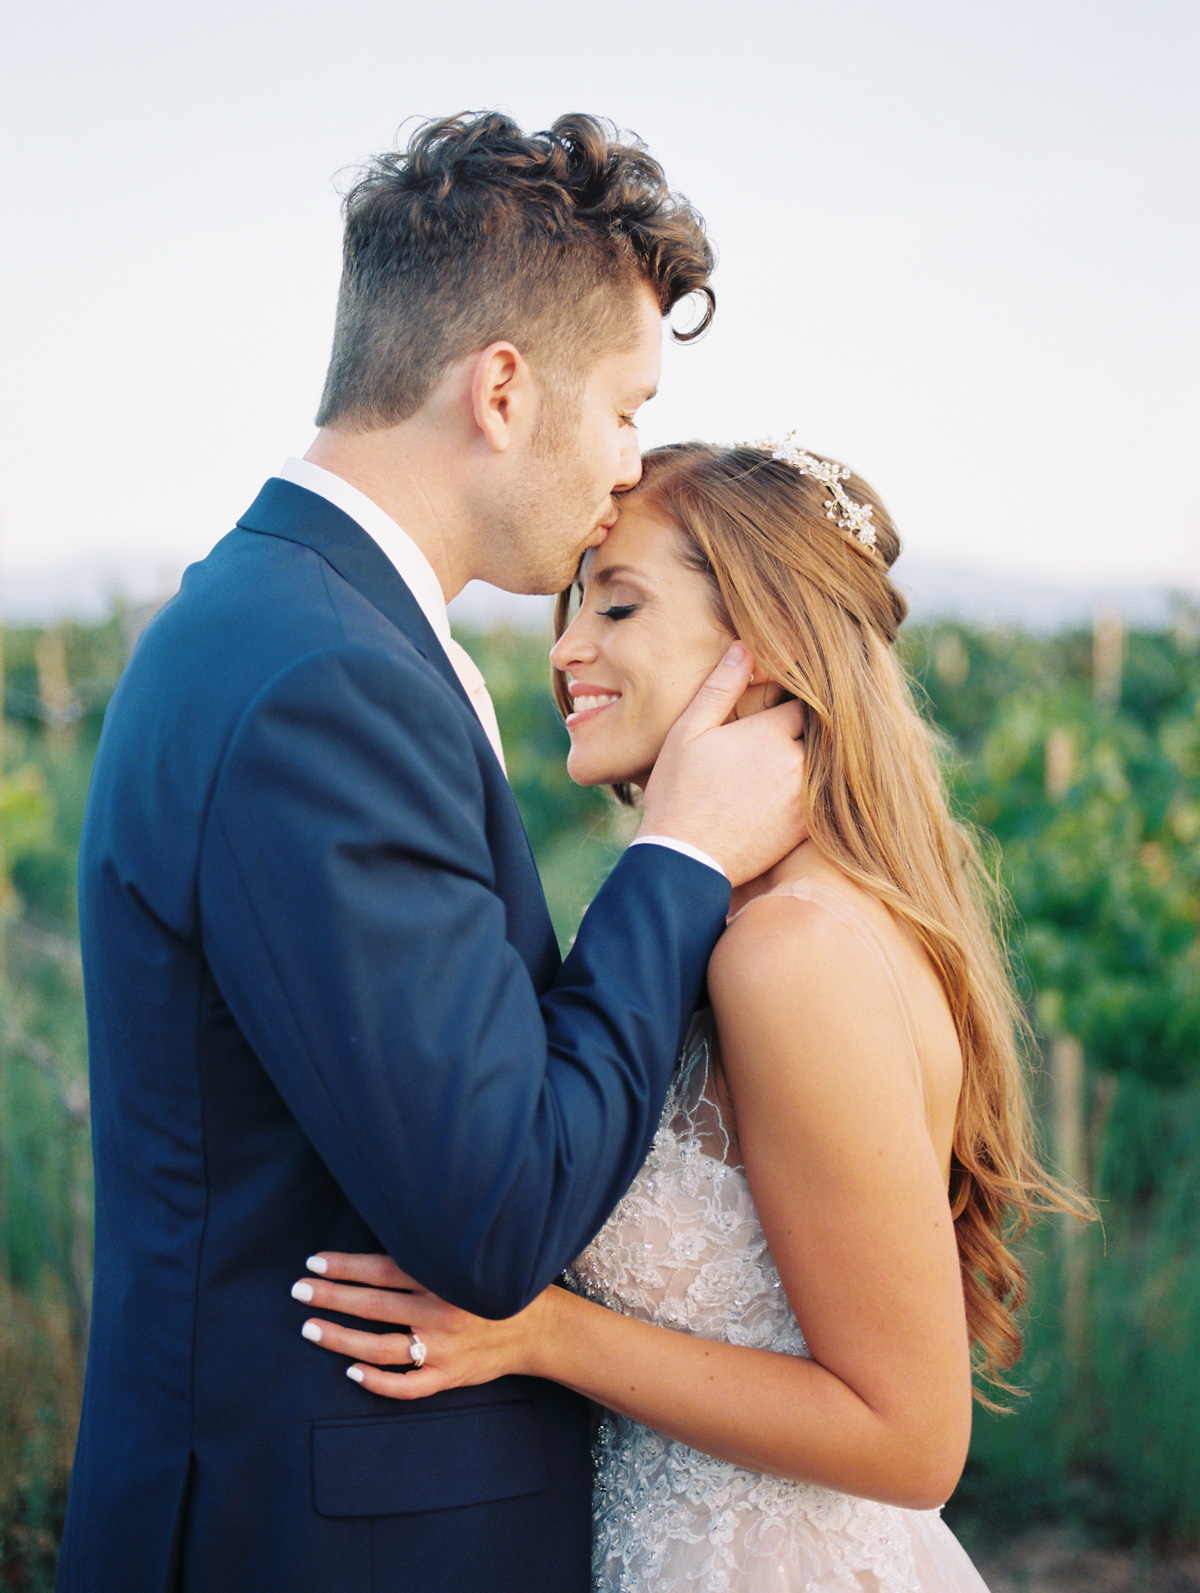 Groom kissing bride on the head, redhead bride smiling |Harrison & Jocelyne's gorgeous Temecula wedding day at Wiens Family Cellars captured by Temecula wedding photographers Betsy & John